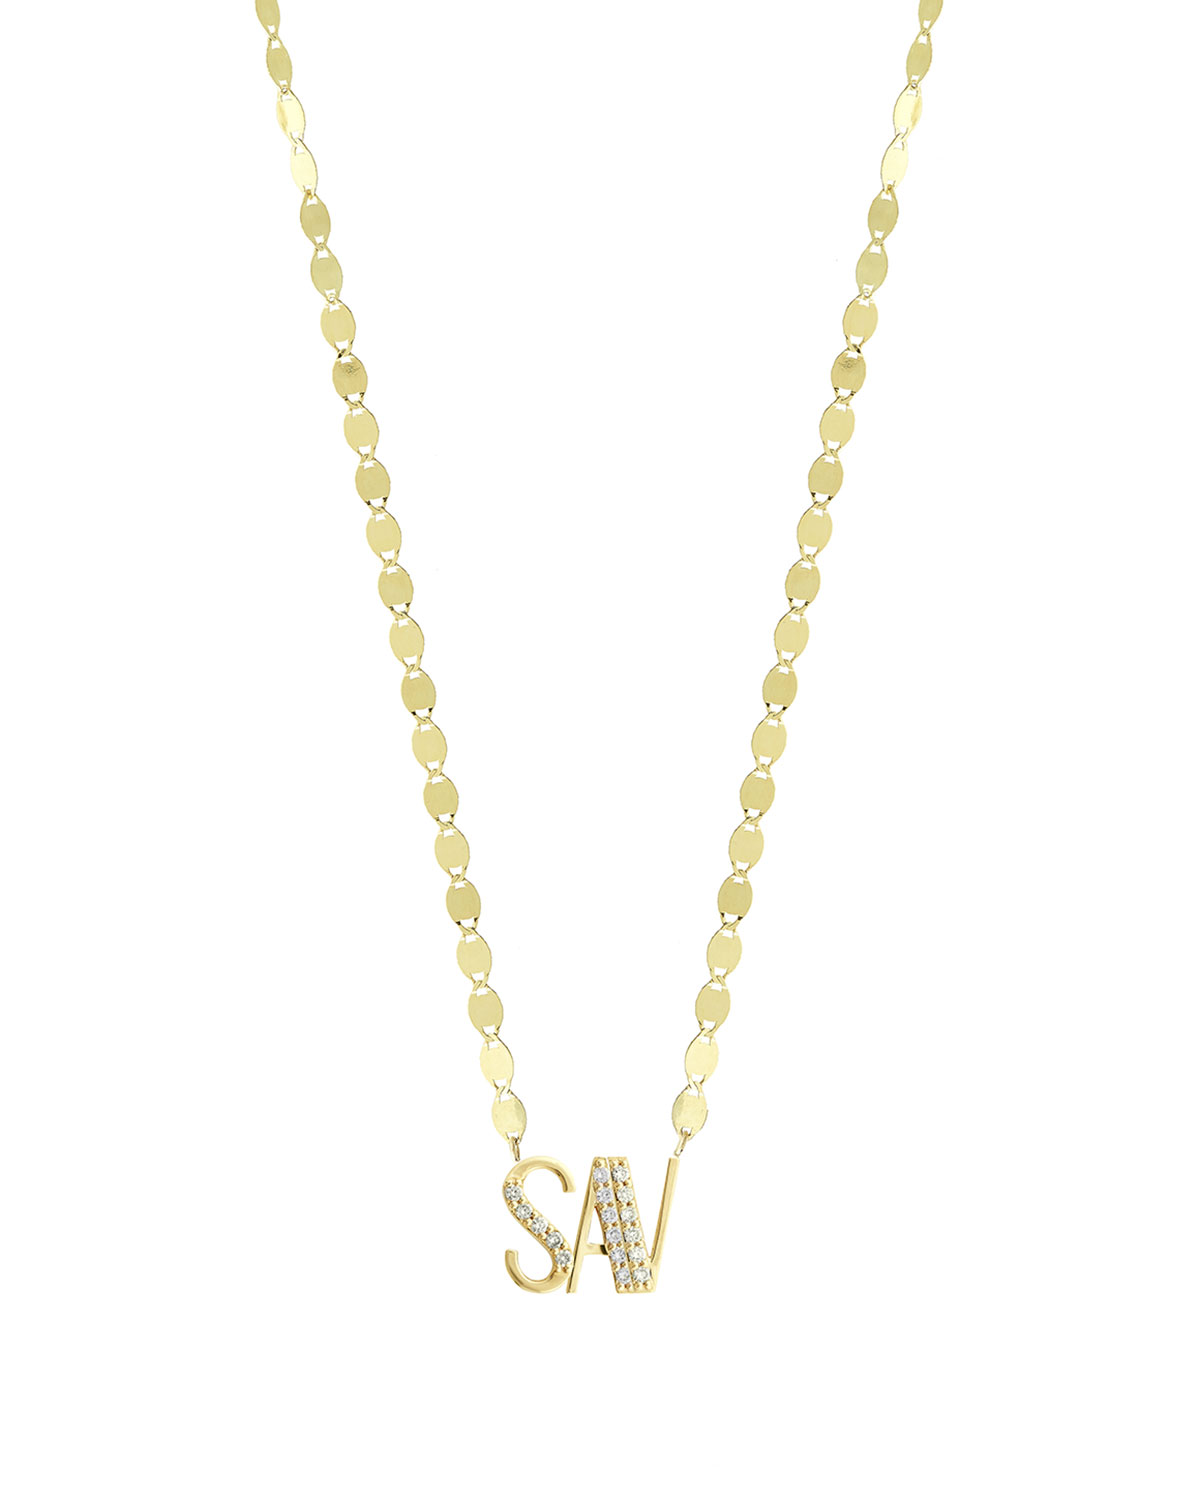 Lana Gold Personalized Three-Letter Pendant Necklace w/ Diamonds